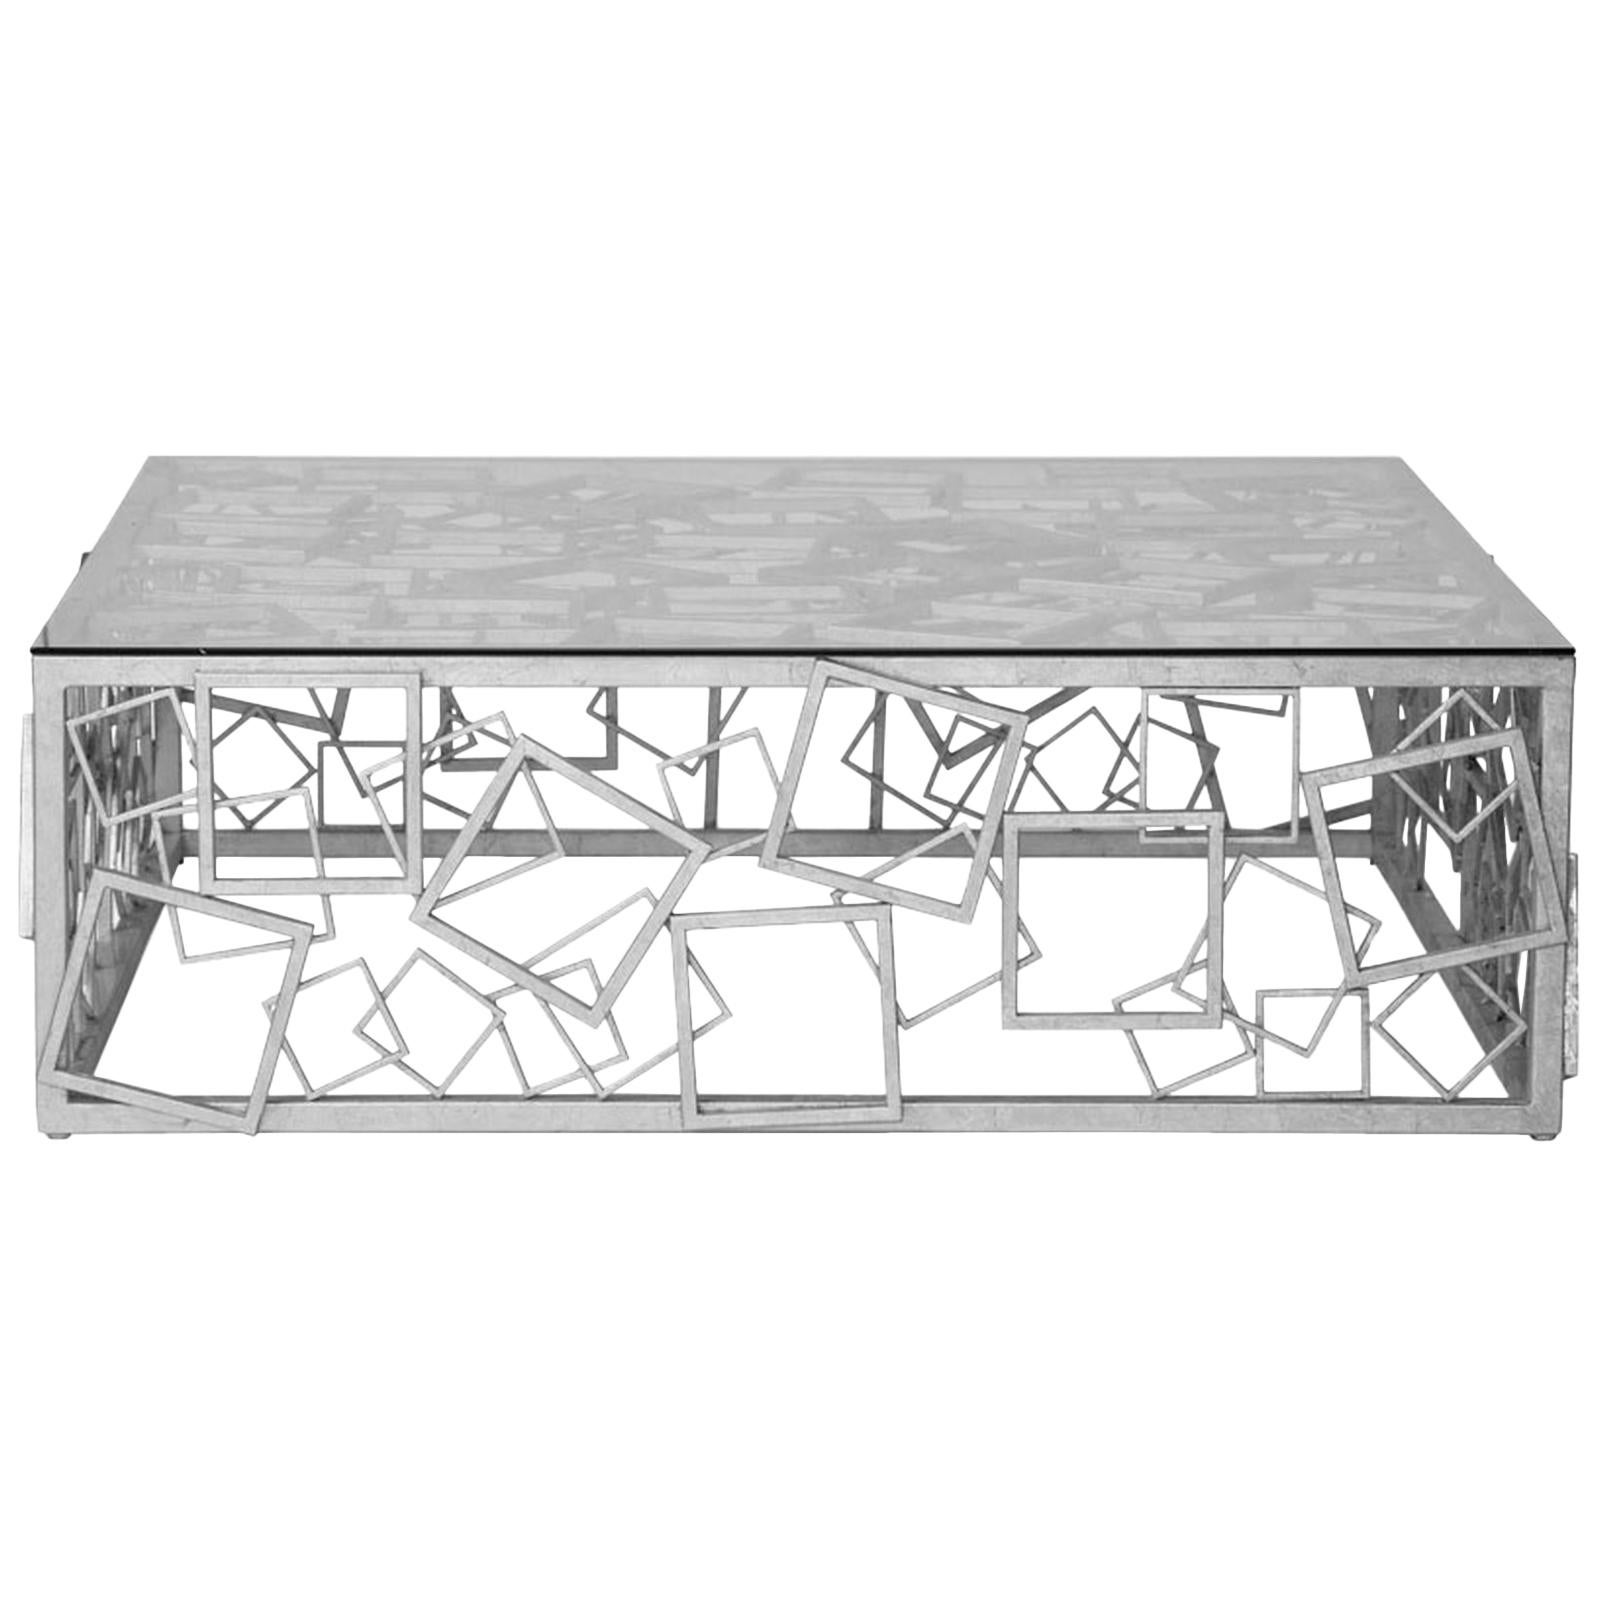 Monterey Cocktail Table in Silver Leaf by Innova Luxuxy Group